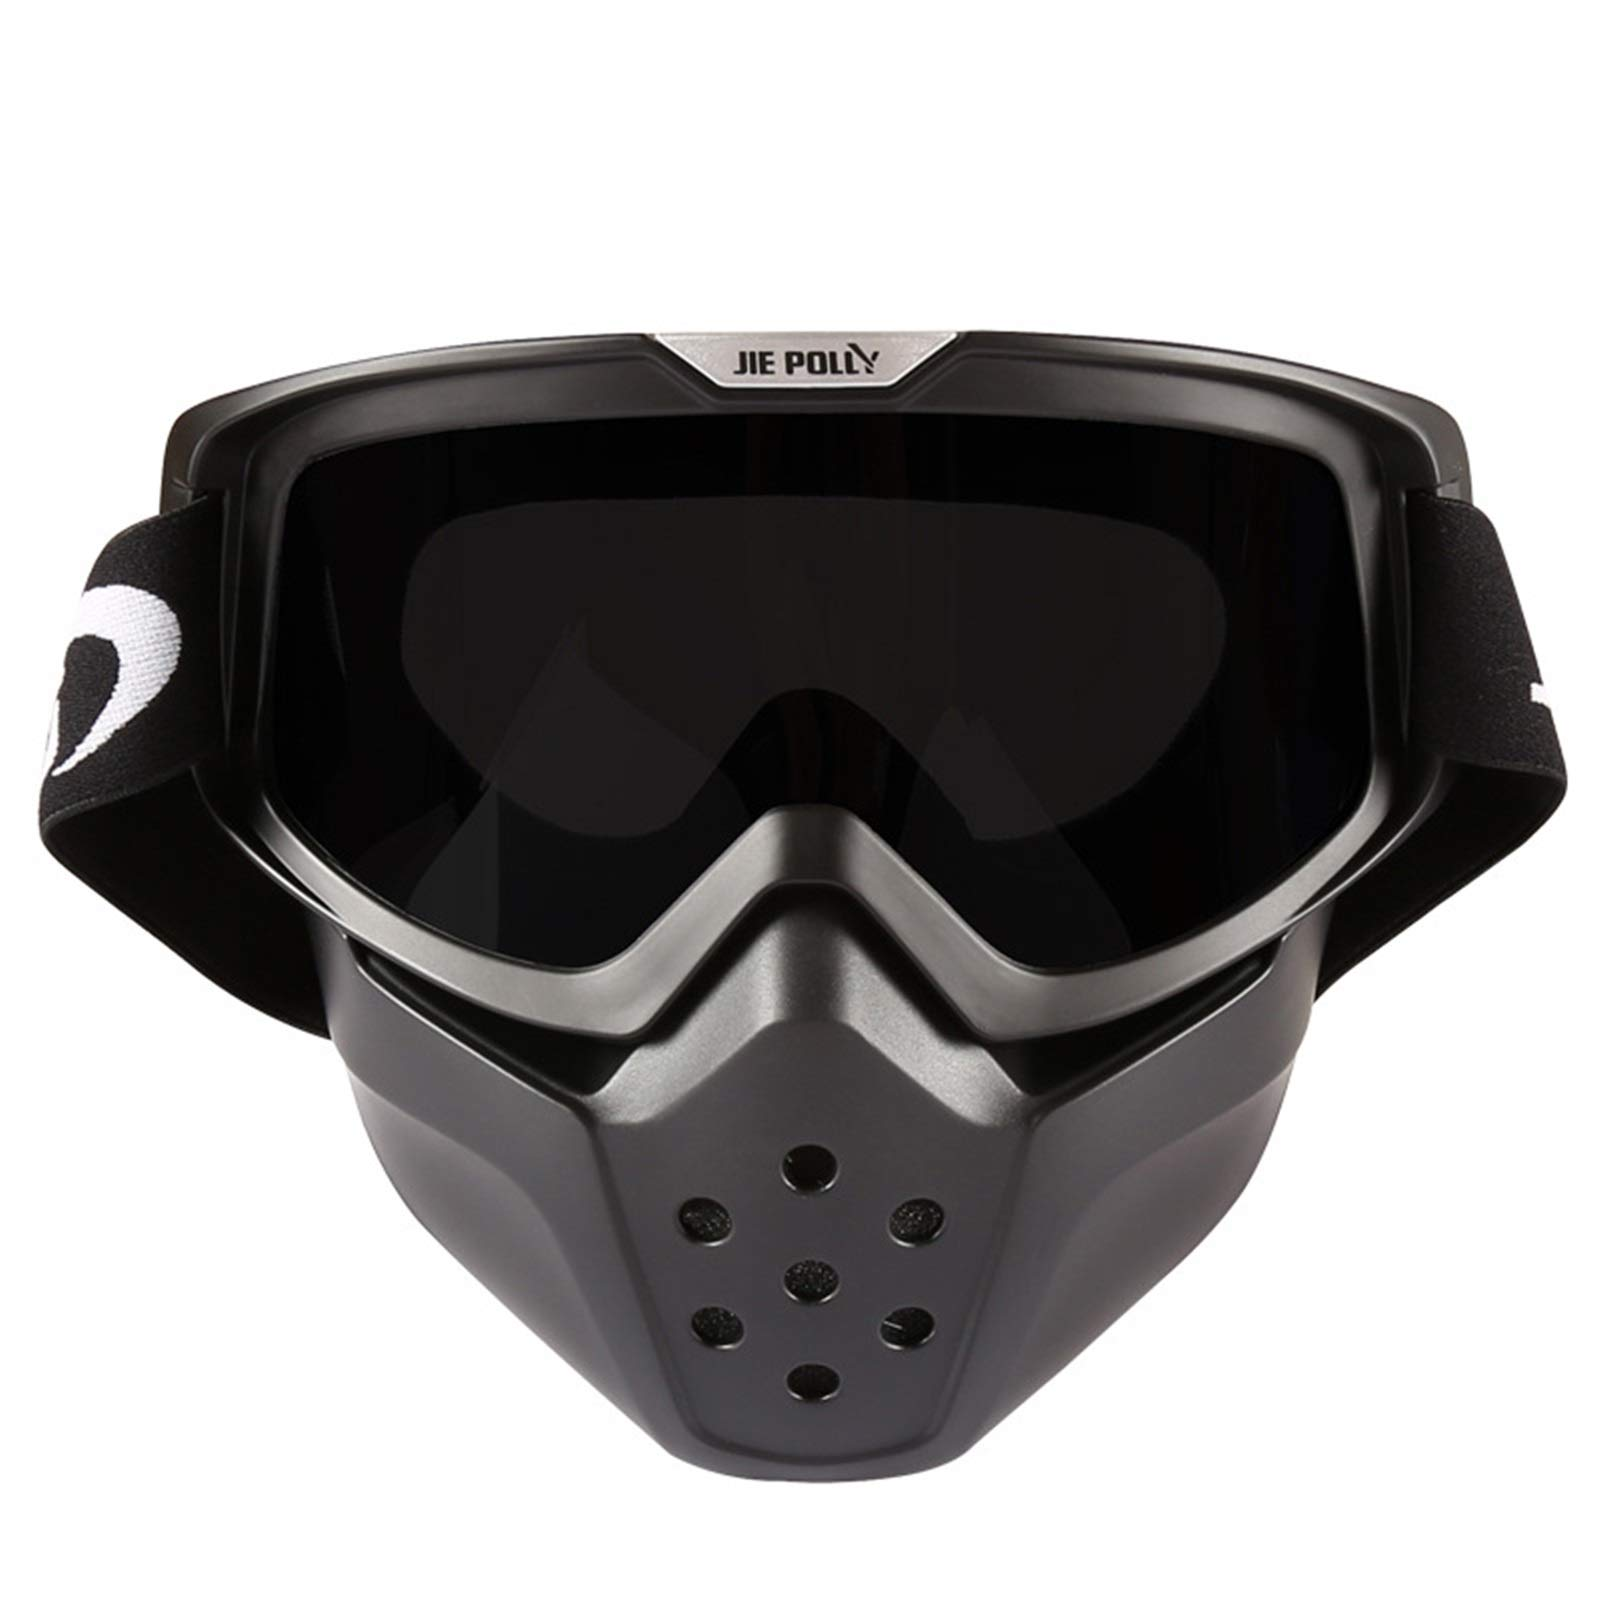 Adisaer Winter Sports Goggles Shark mask Off-Road Motorcycle Locomotive Sand-Proof Goggles Gray for Adults